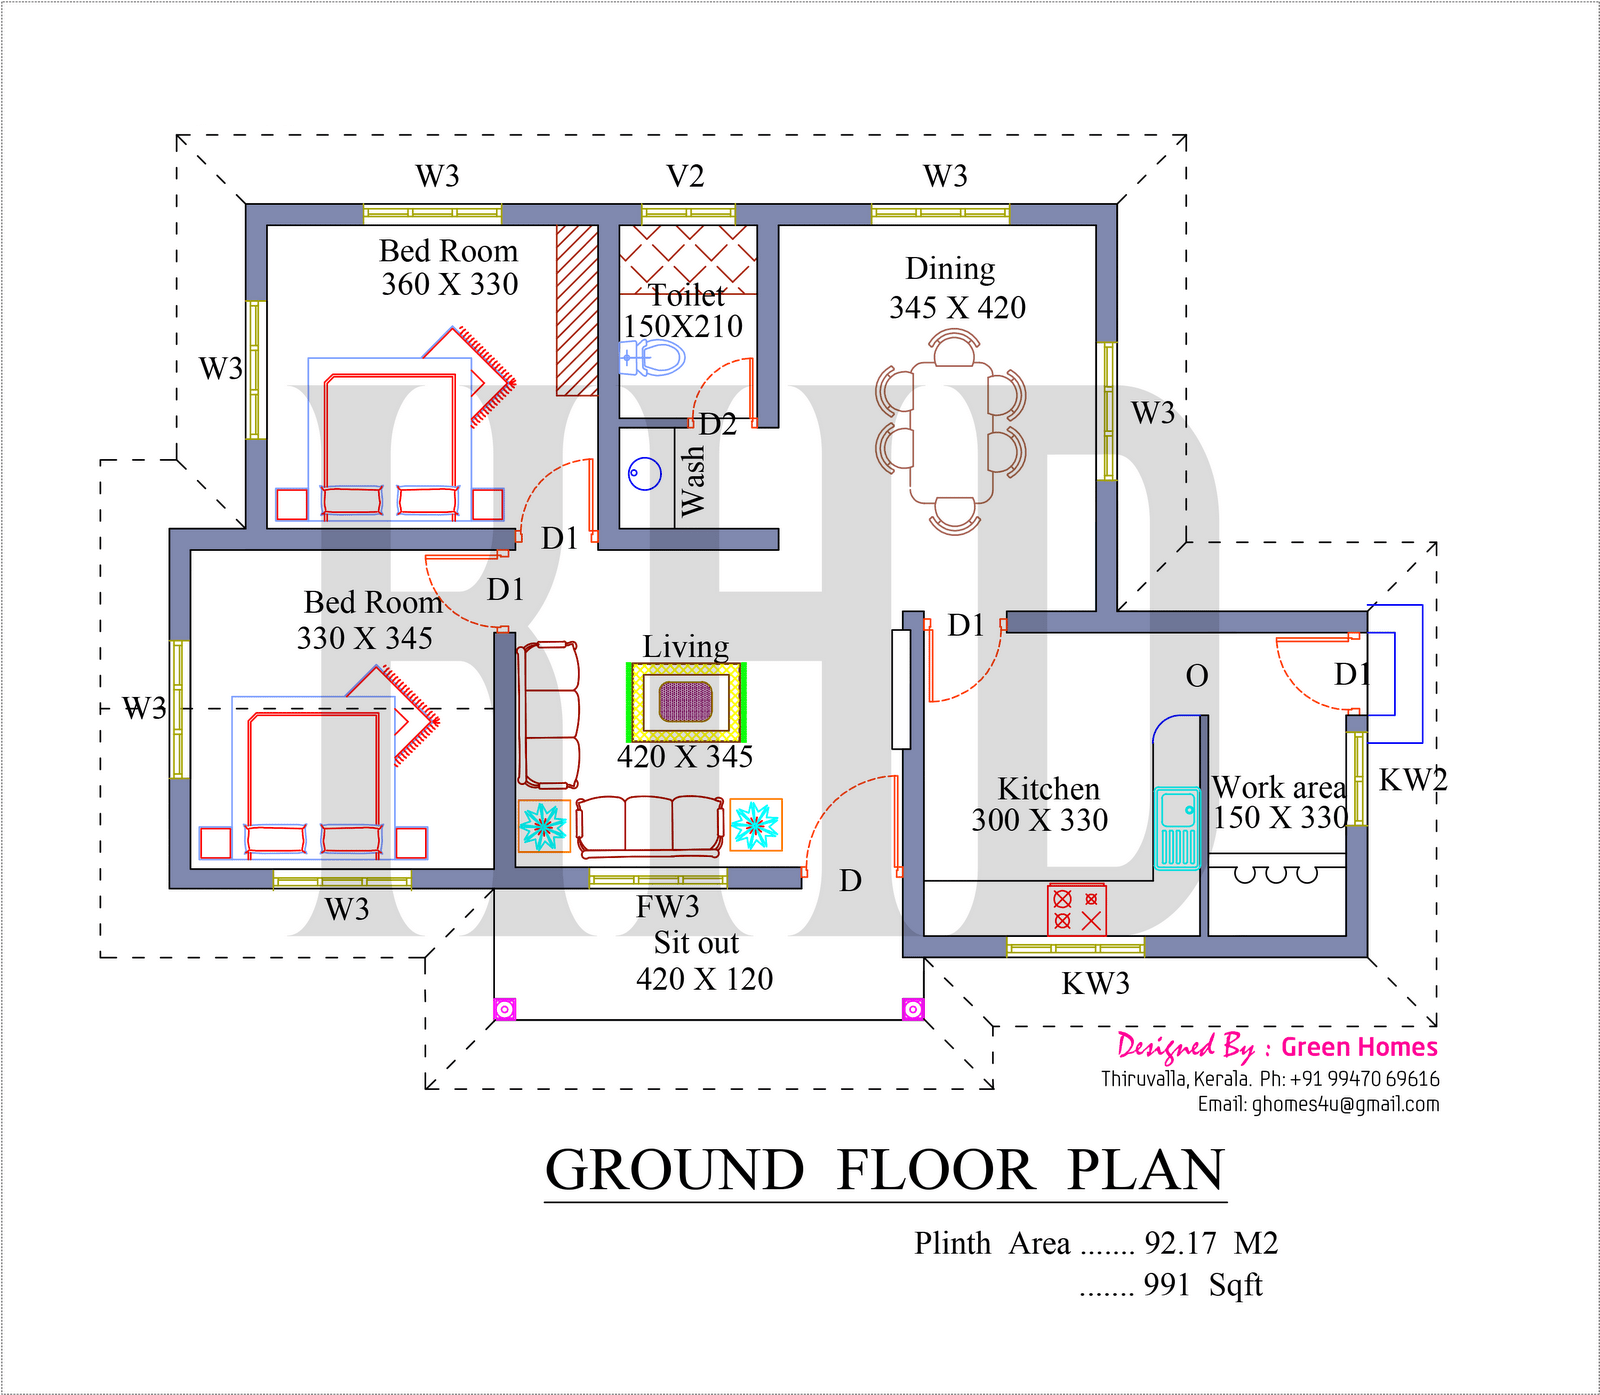 Low cost house in kerala with plan photos 991 sq ft khp for Home plans floor plans